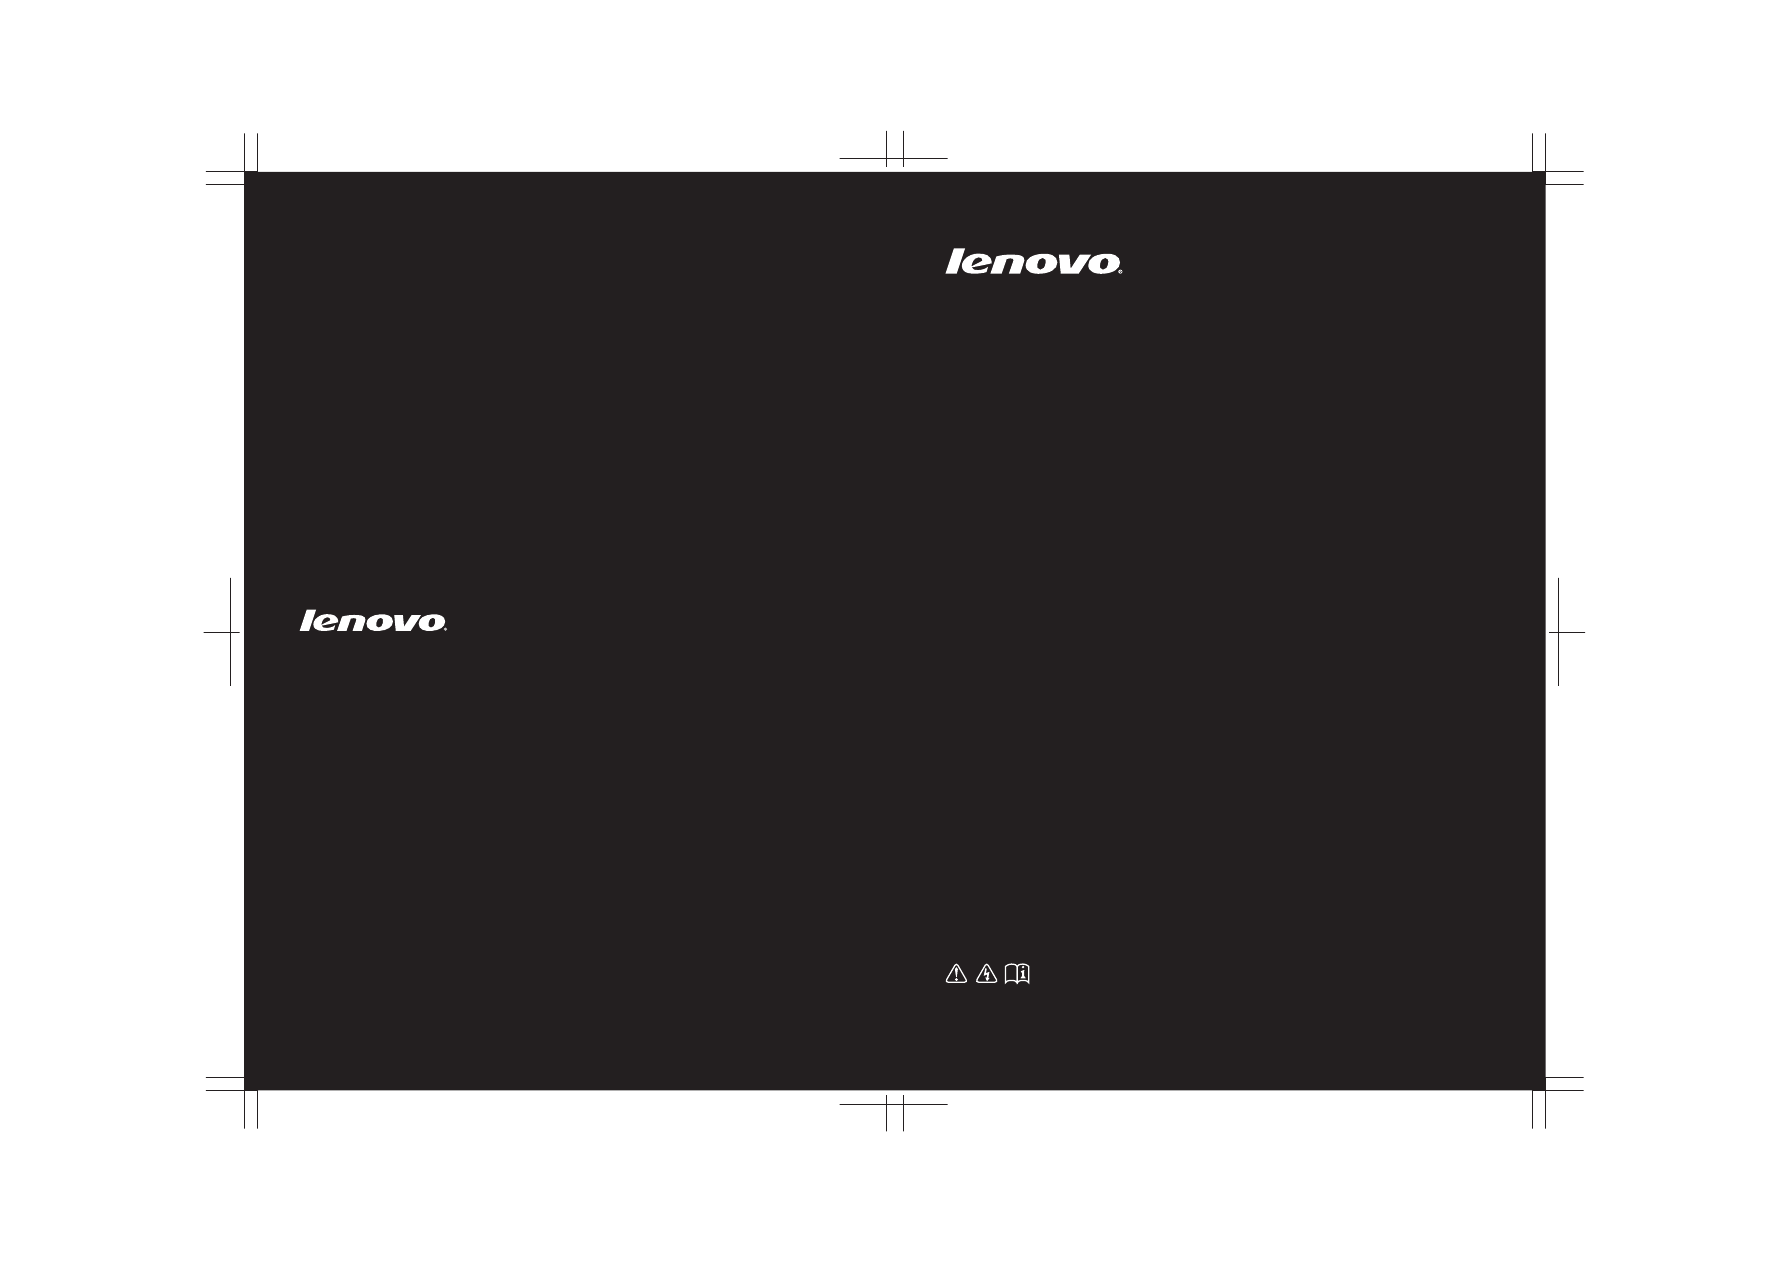 lenovo y520-15ikbn manual pdf